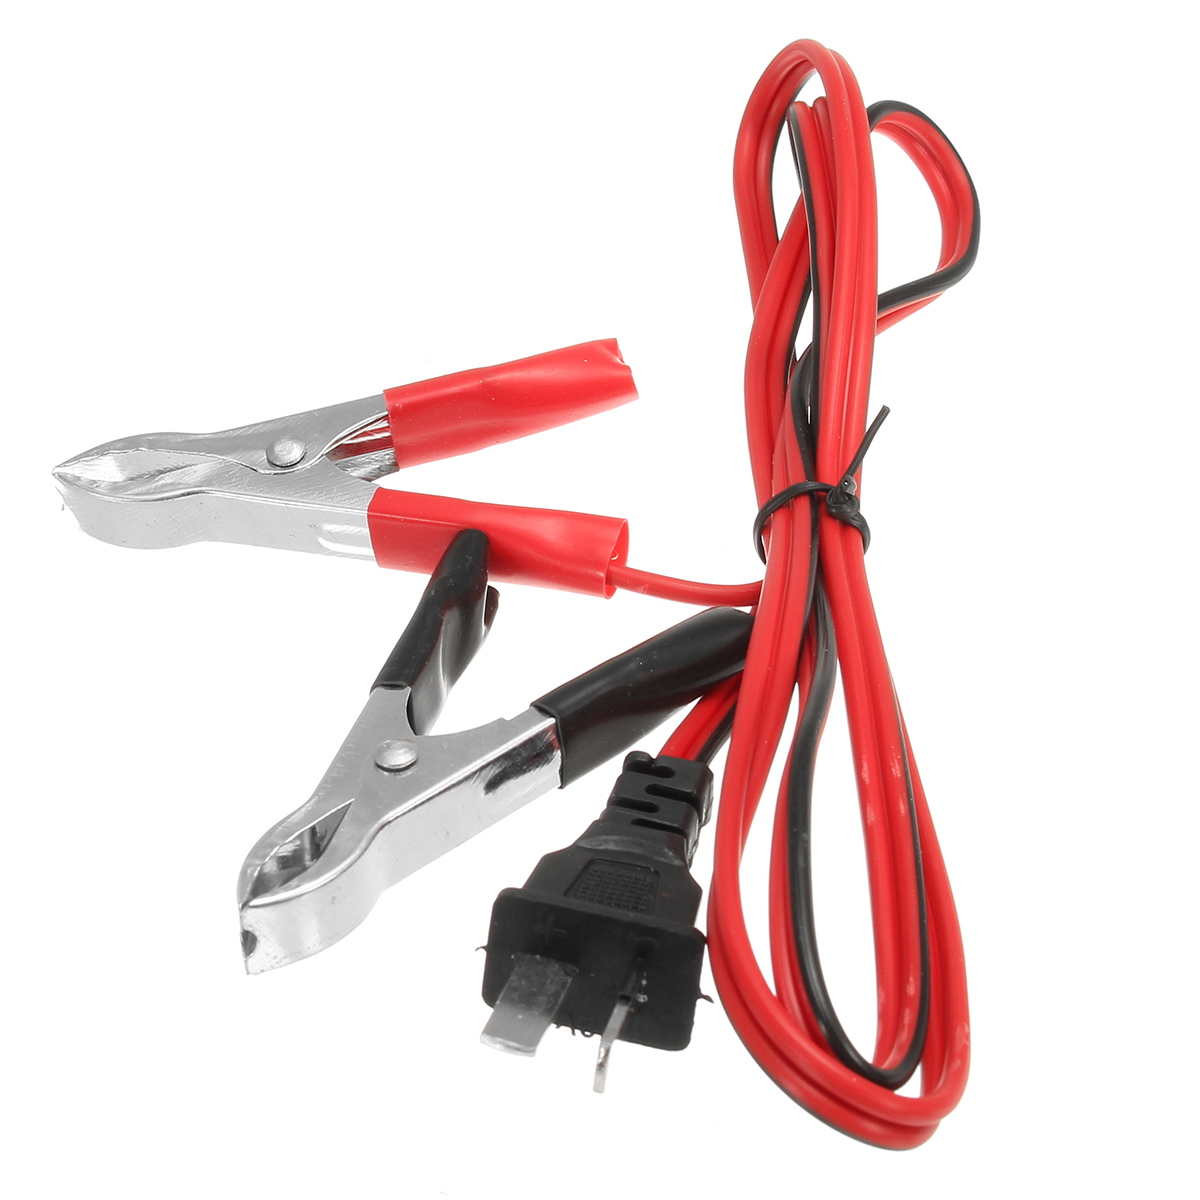 12v dc charging clips cord cable wires for honda eu1000i ... black white dc 12v wiring #5